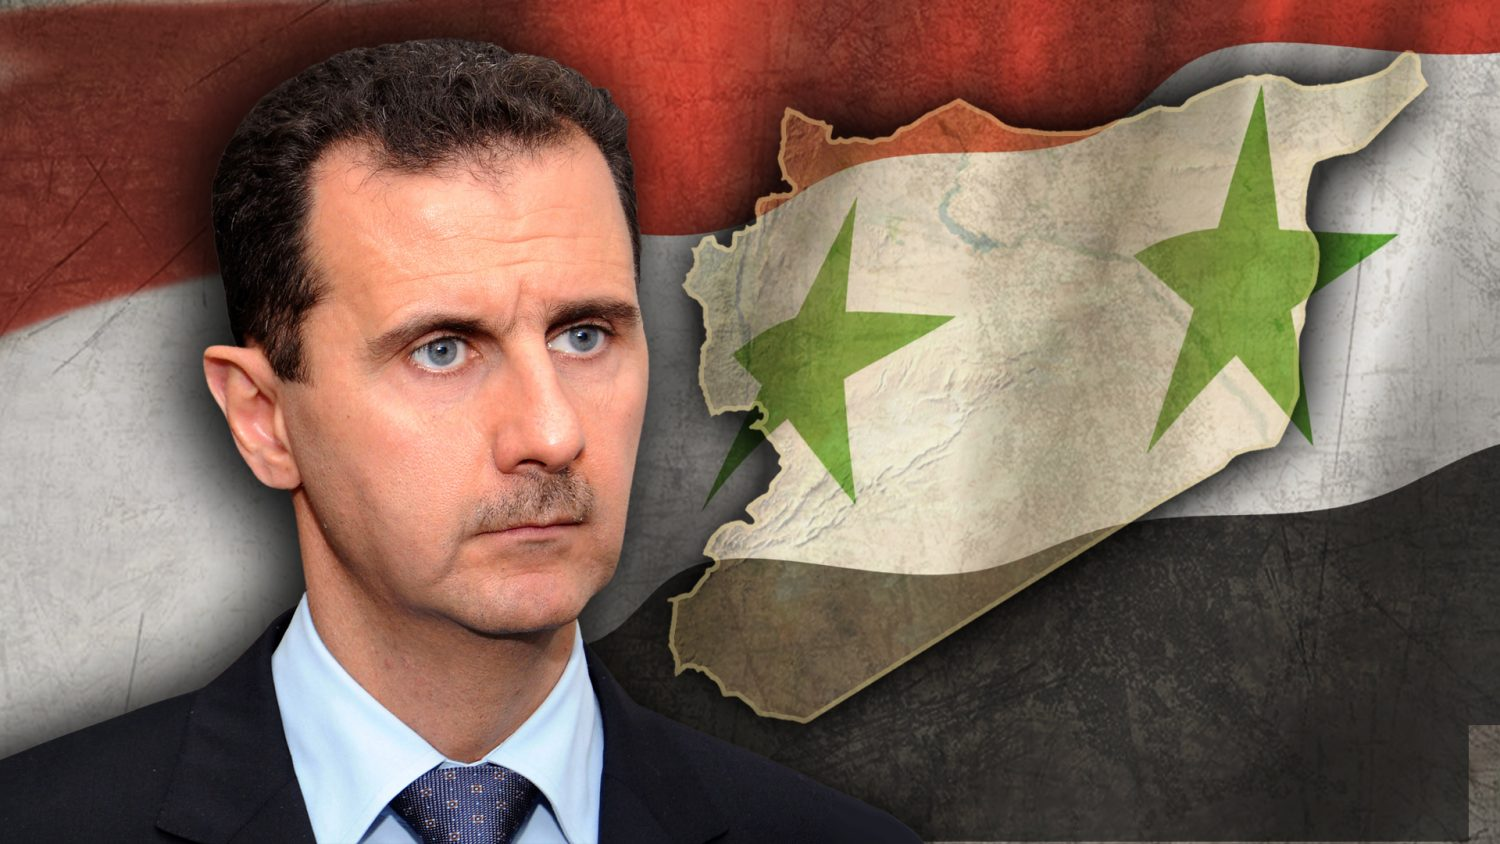 Assad%2C+Syria+and+the+hard+questions+for+peace.